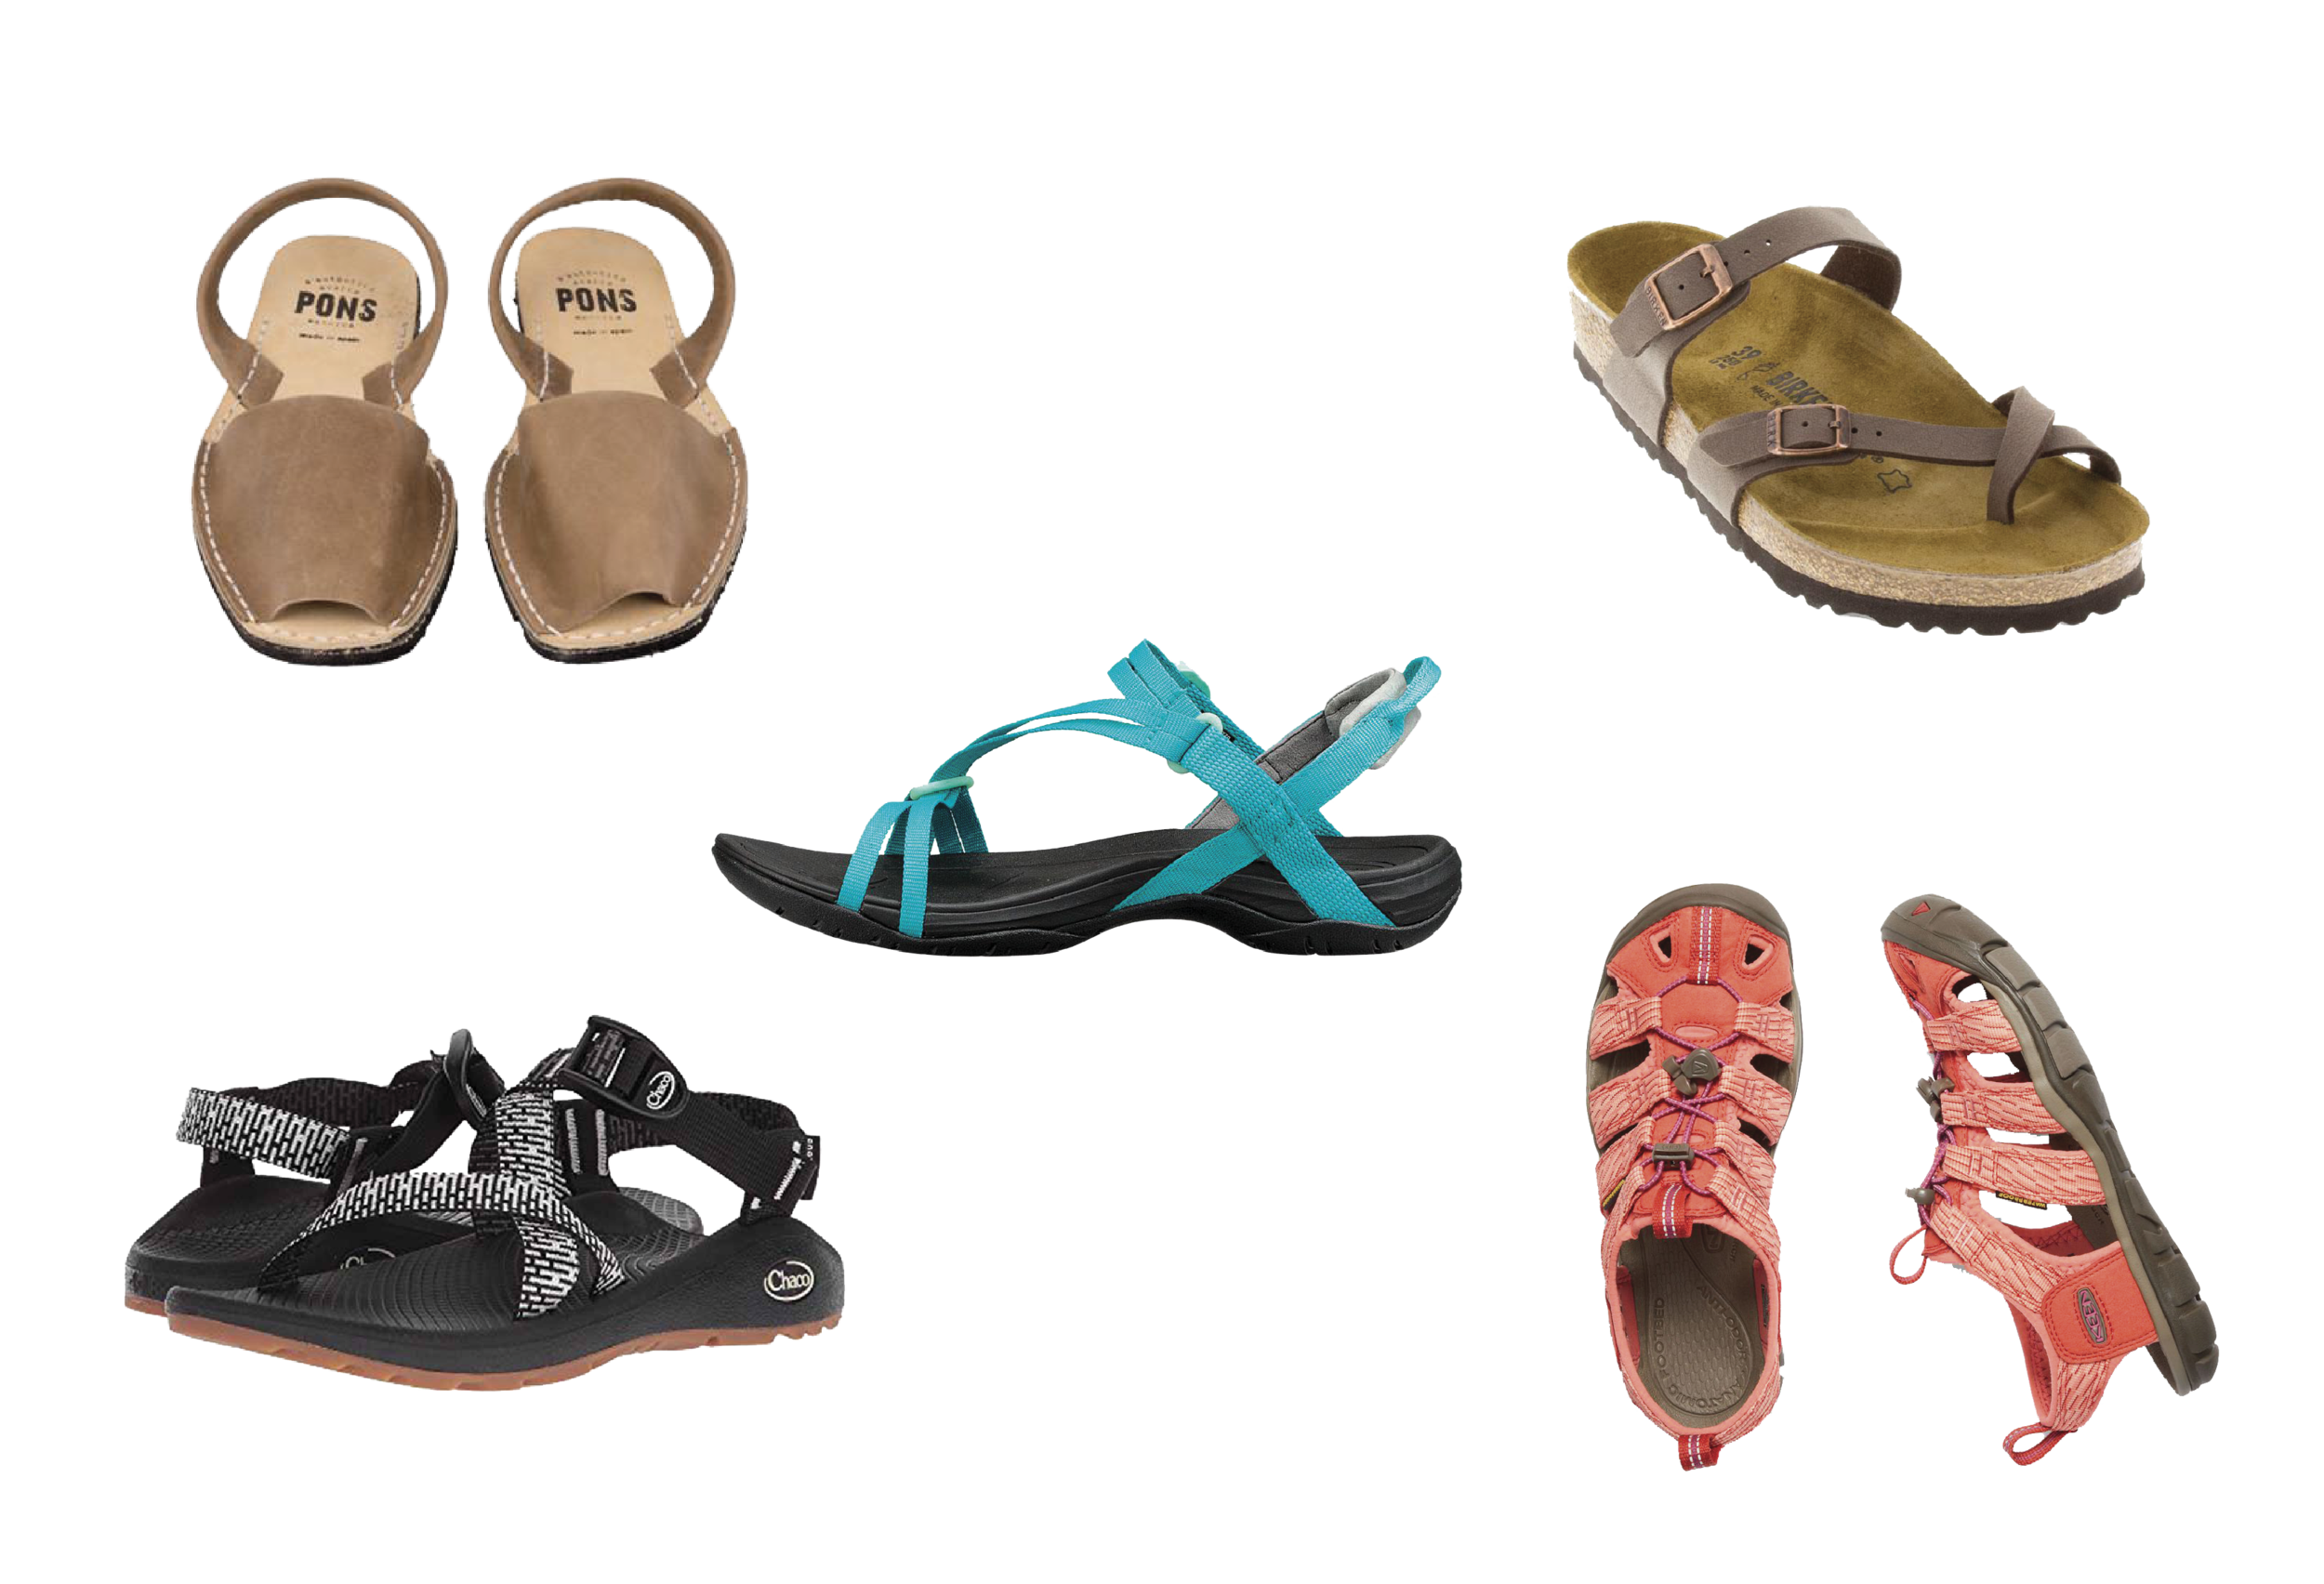 Travel Sandal options - Pons Avarcas, Birkenstock, Chaco, Teva, and Keen